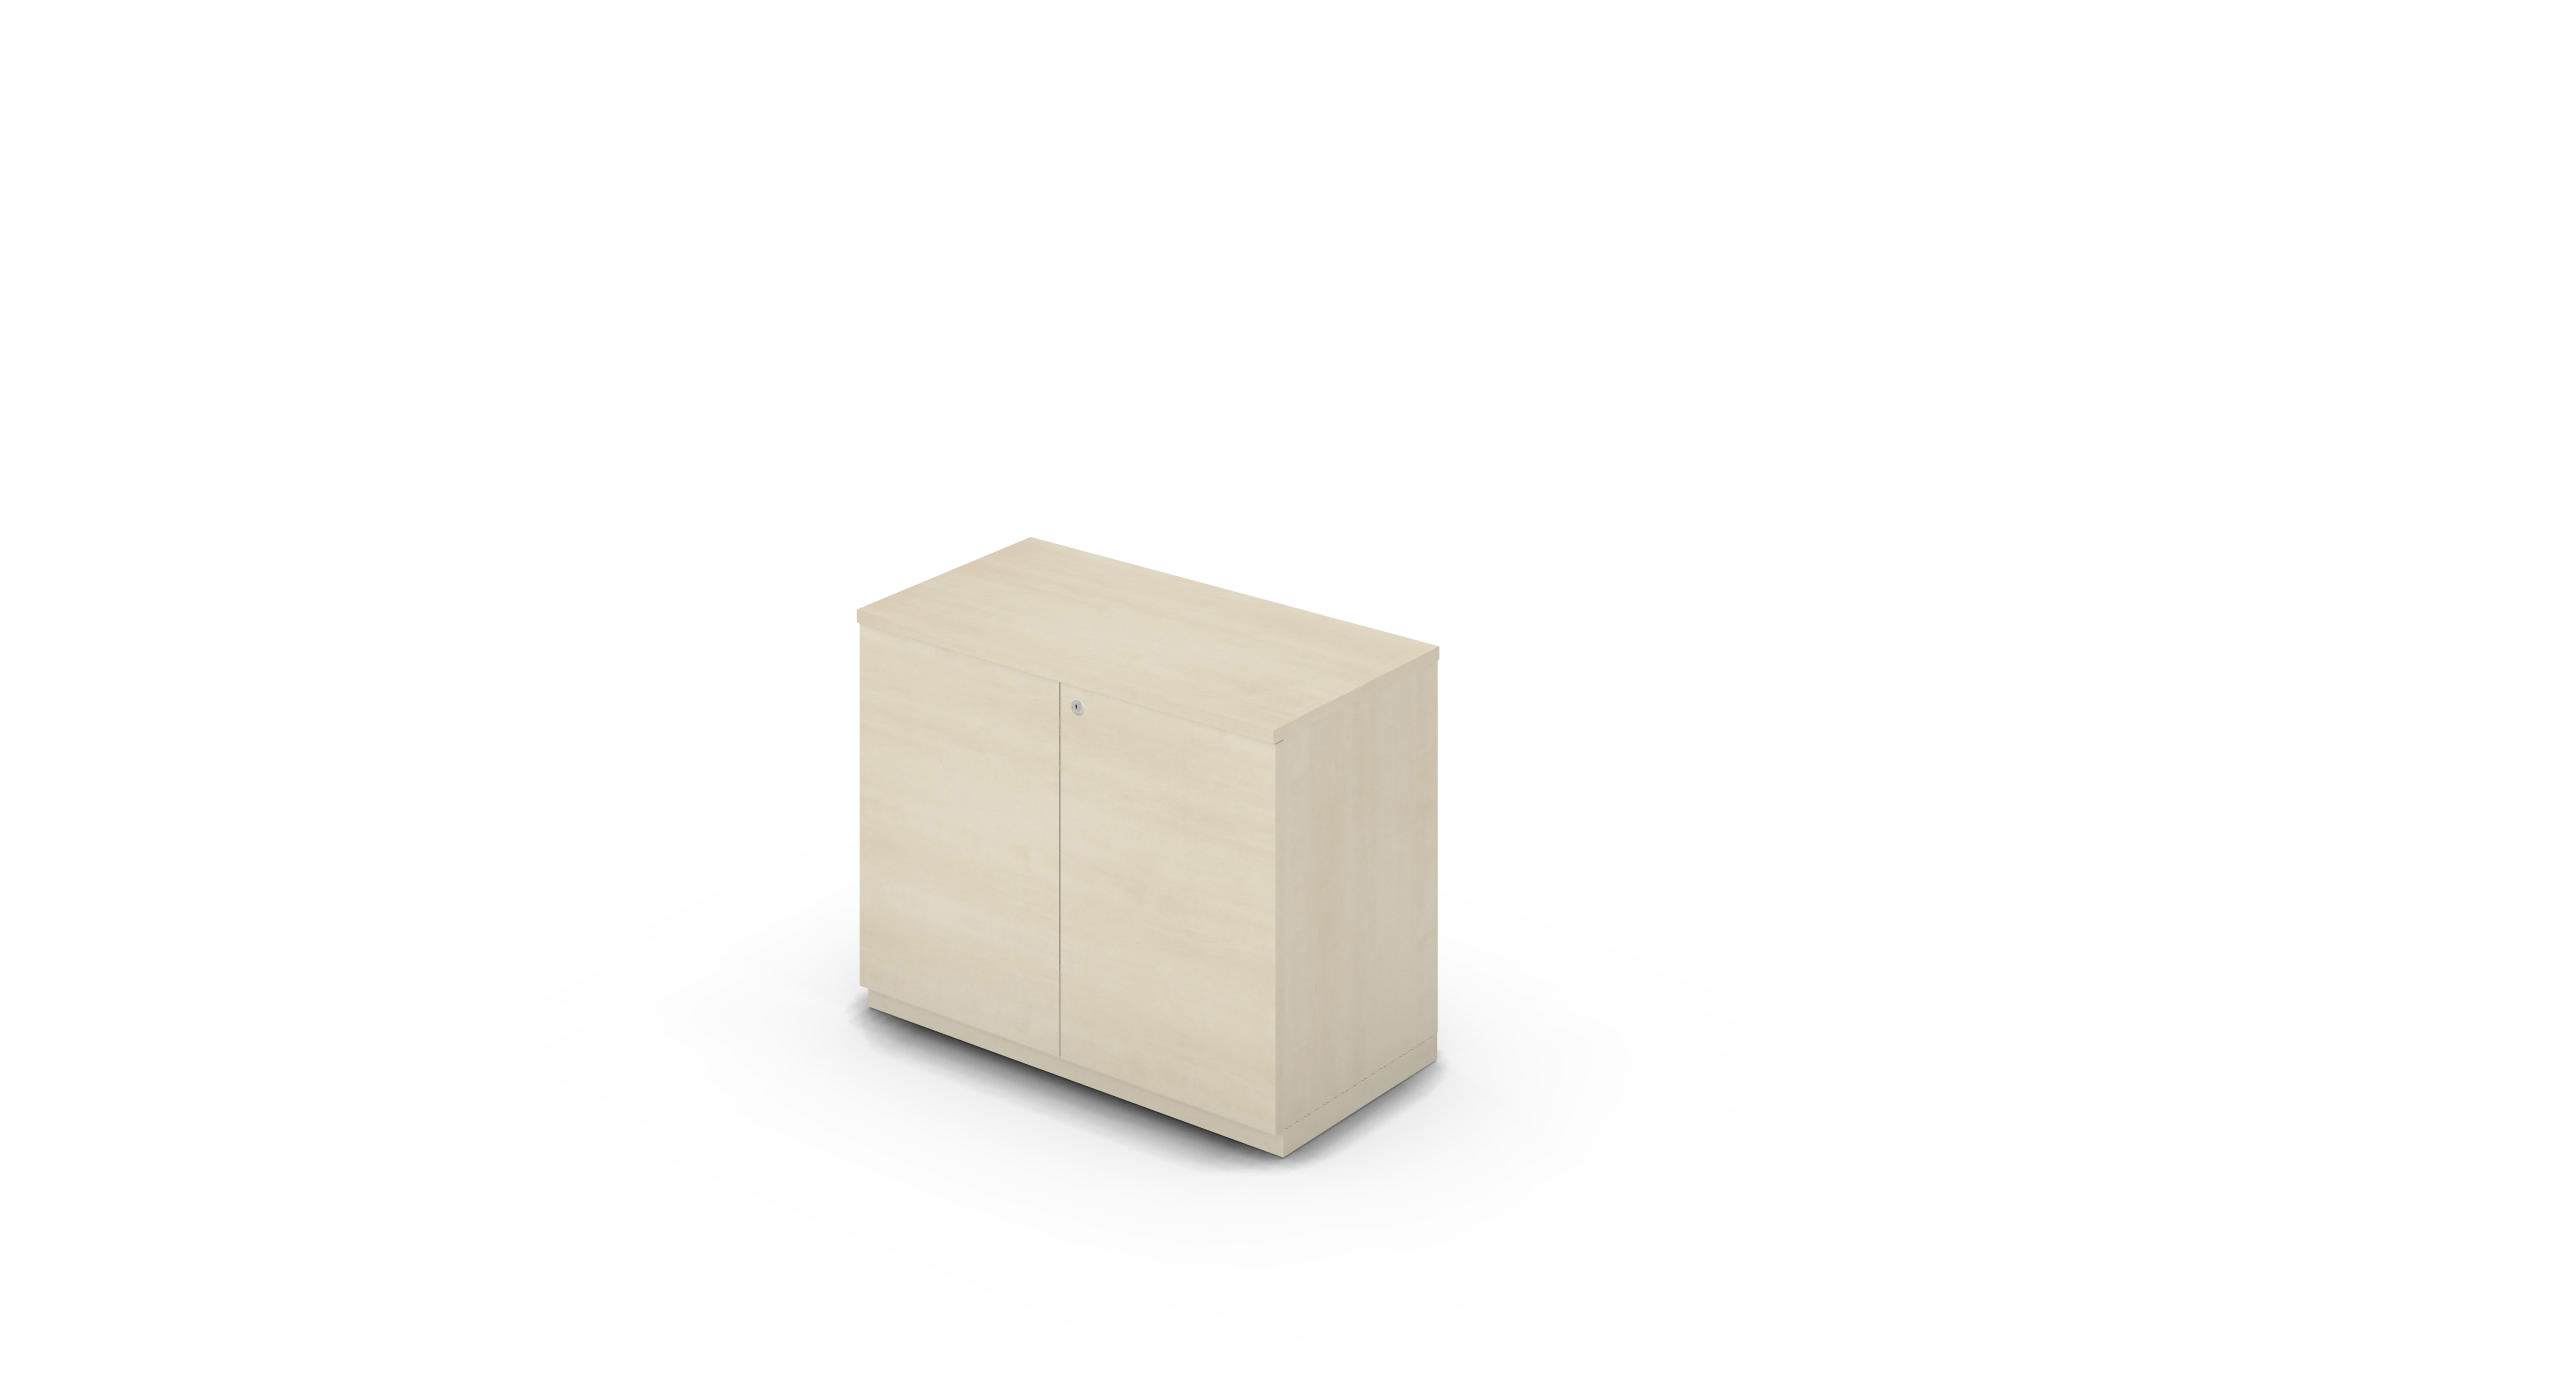 Cabinet_900x450x775_HD_Maple_Push_WithCylinder